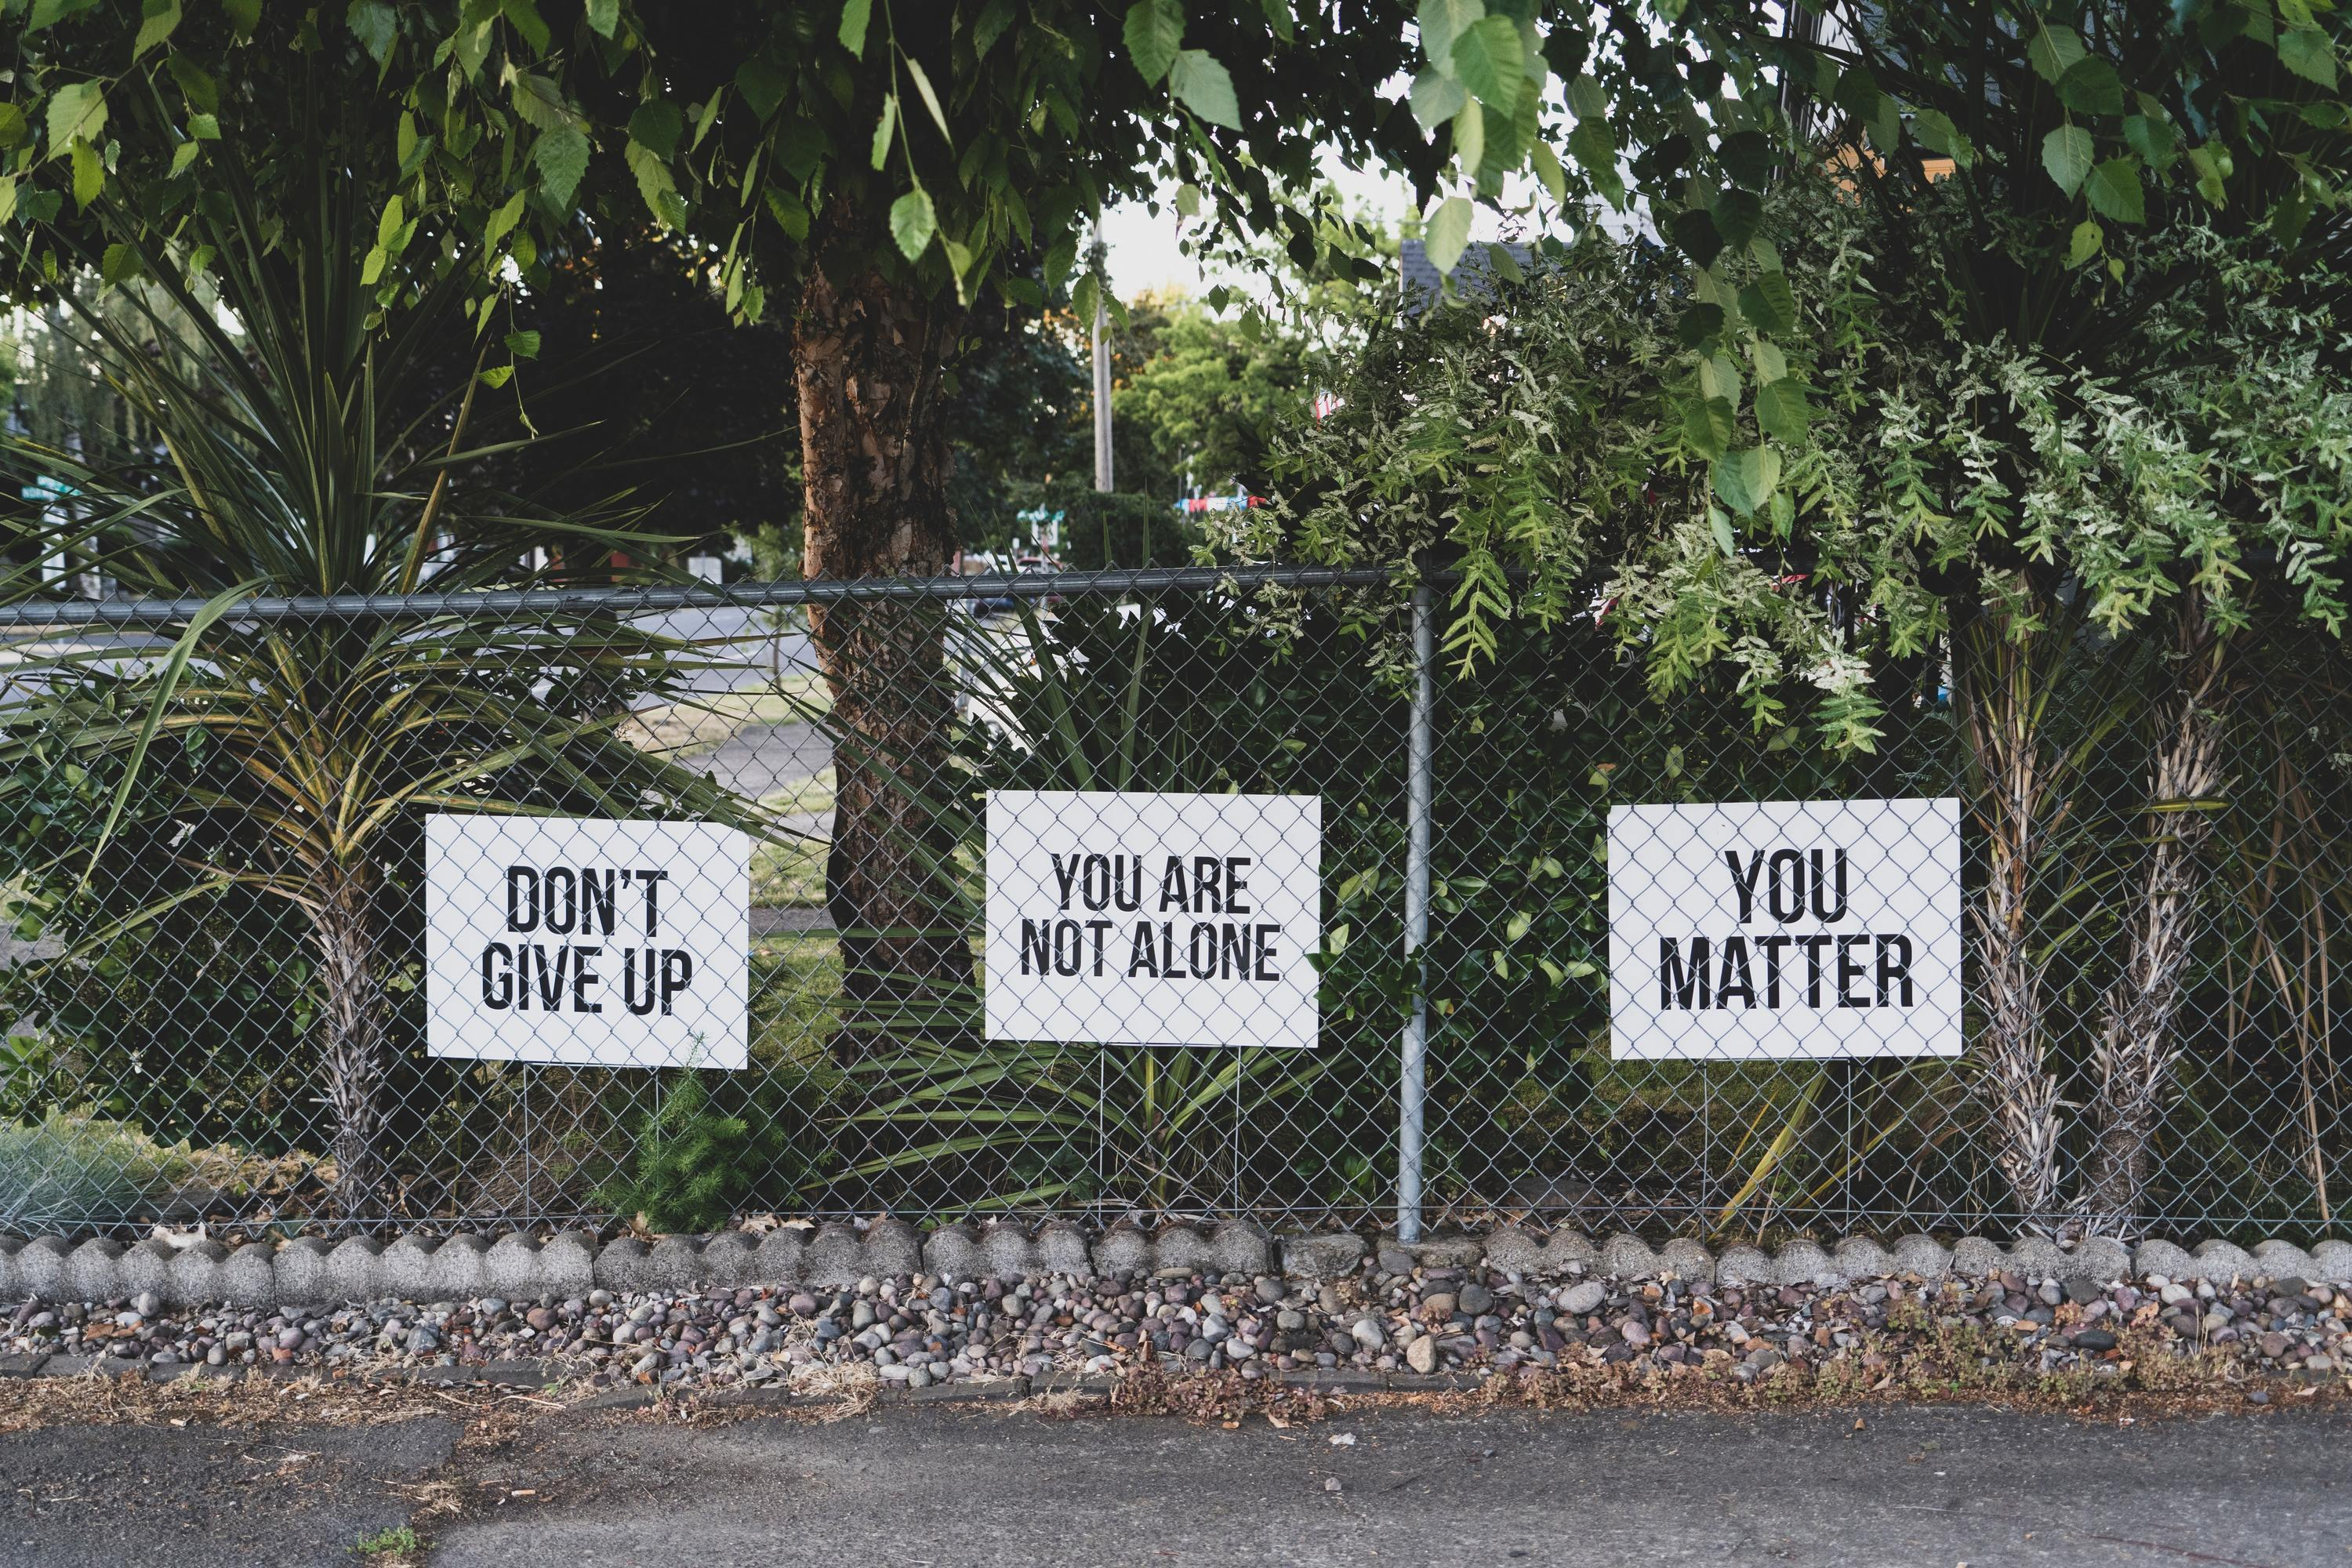 Signs on fences: Don't Give Up, You're Not Alone, You Matter